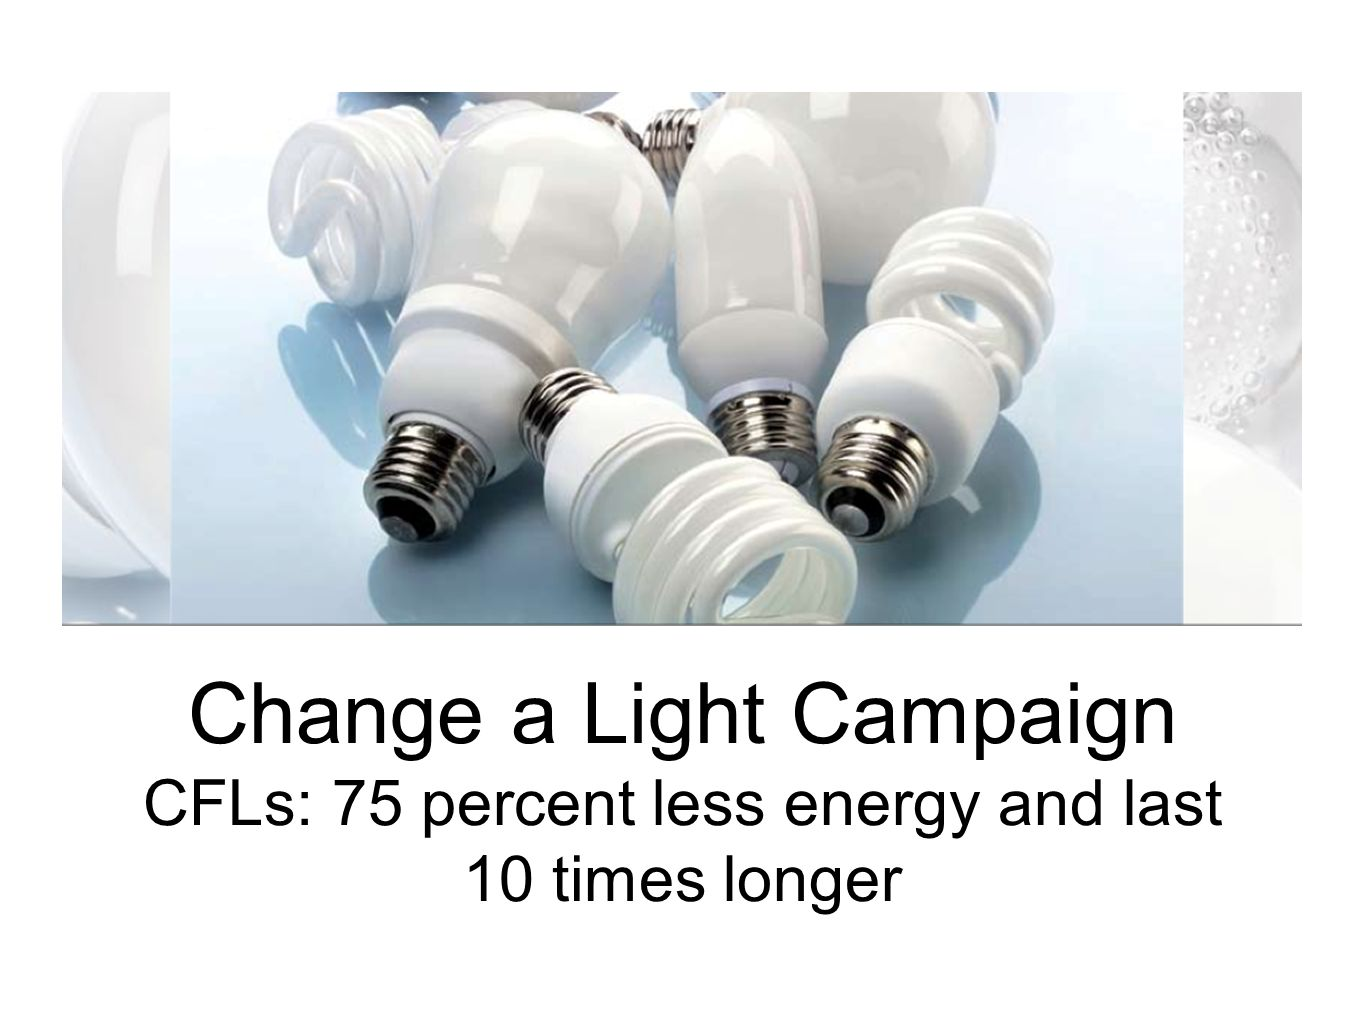 Change a Light Campaign CFLs: 75 percent less energy and last 10 times longer